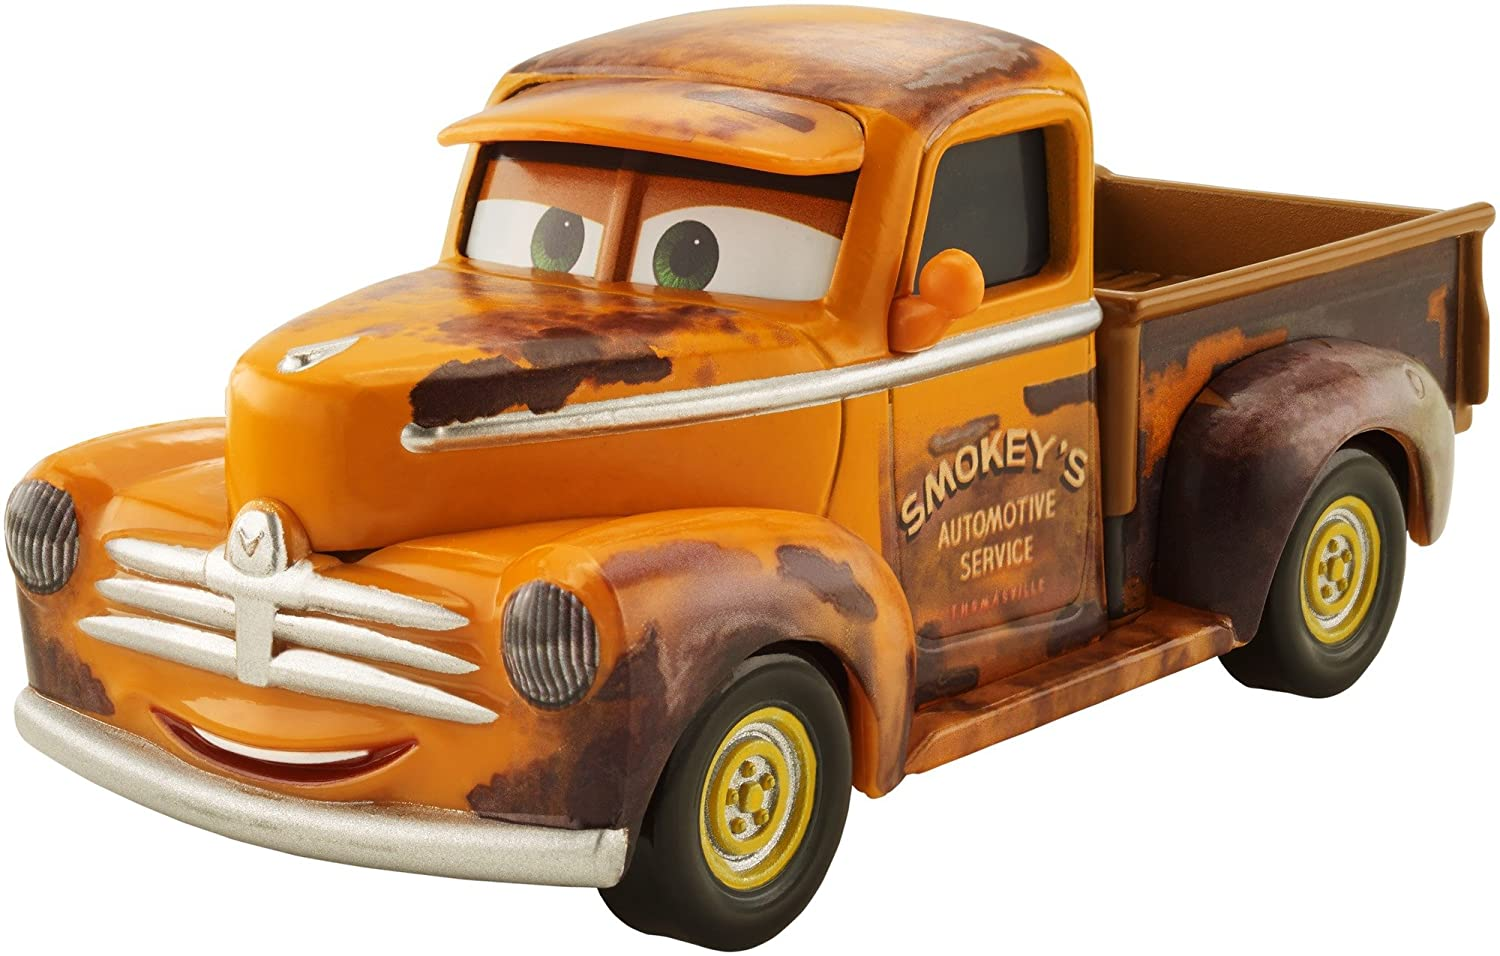 Disney/Pixar Cars 3 Smokey Vehicle Mattel DXV37